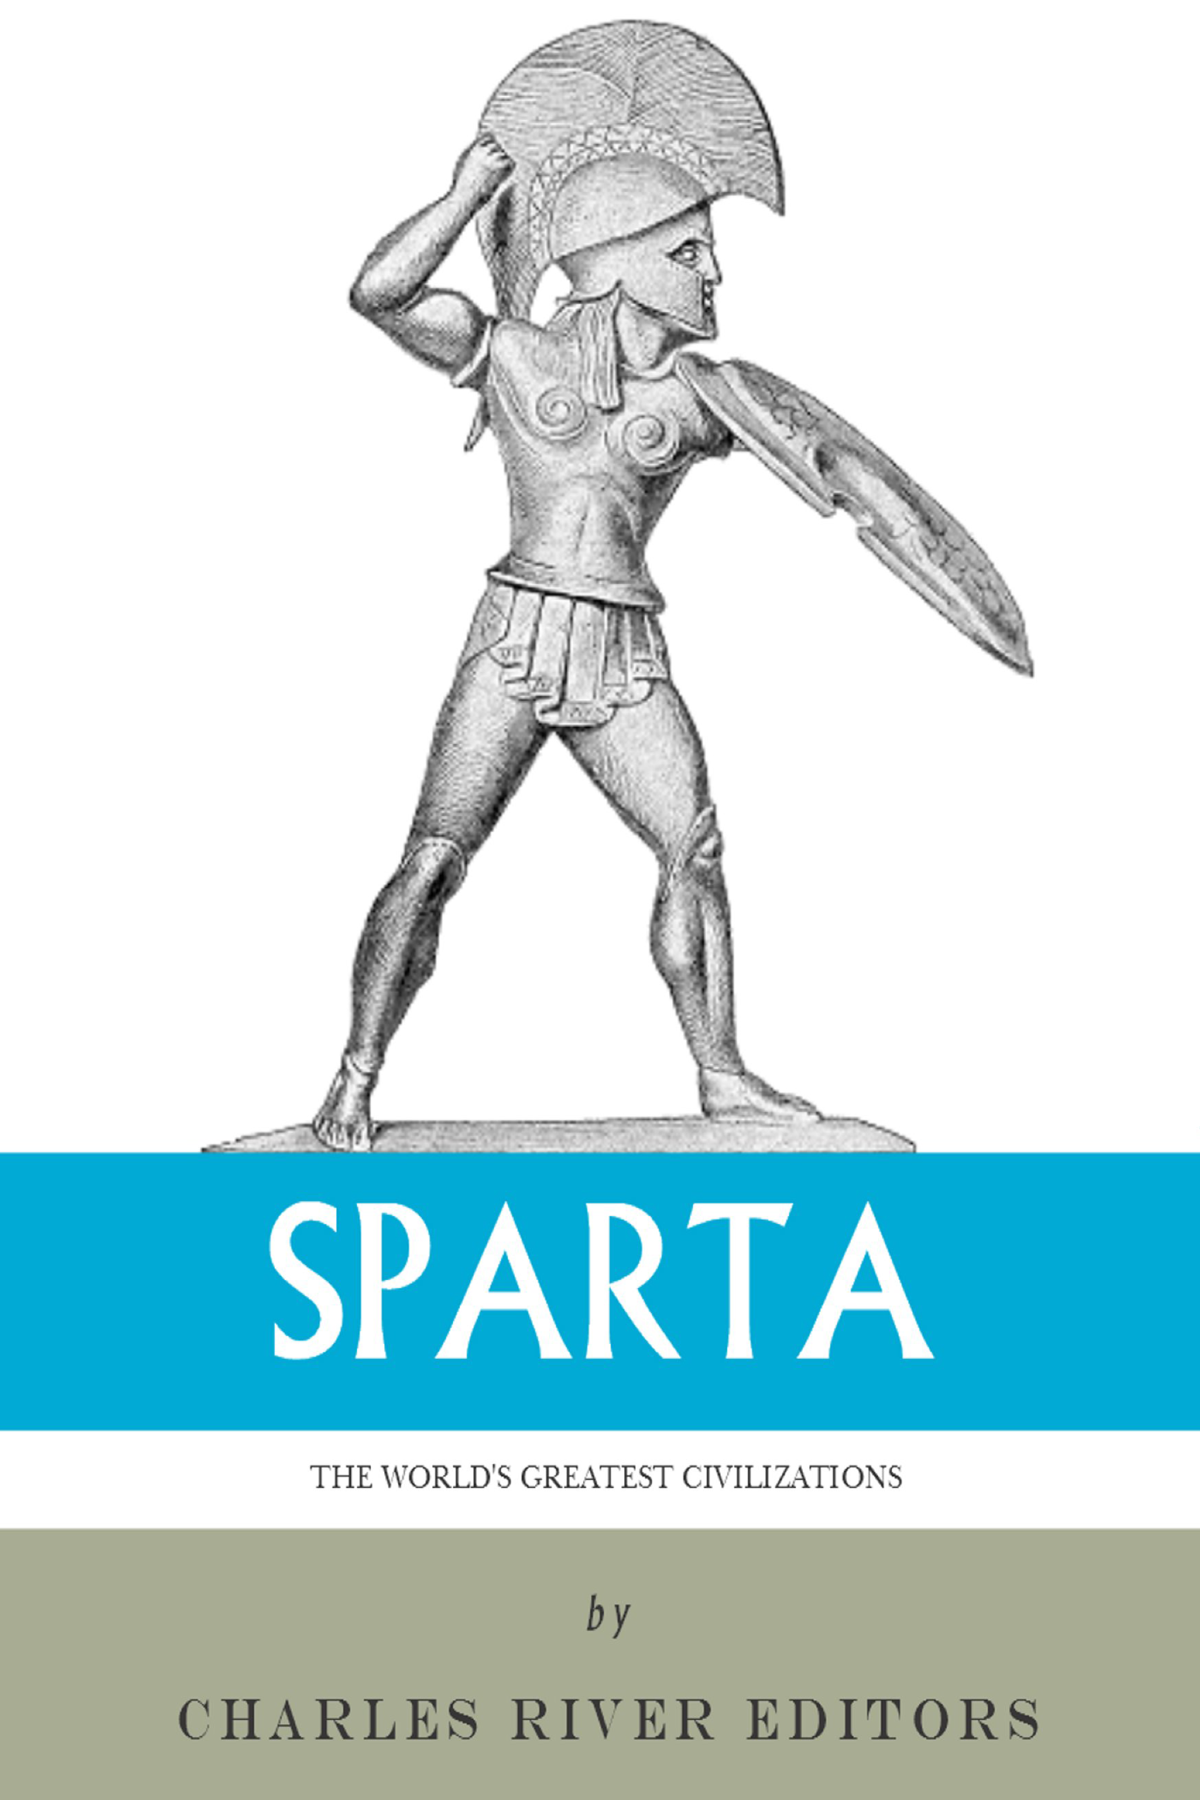 The Worlds Greatest Civilizations: The History and Culture of Ancient Sparta By: Charles River Editors